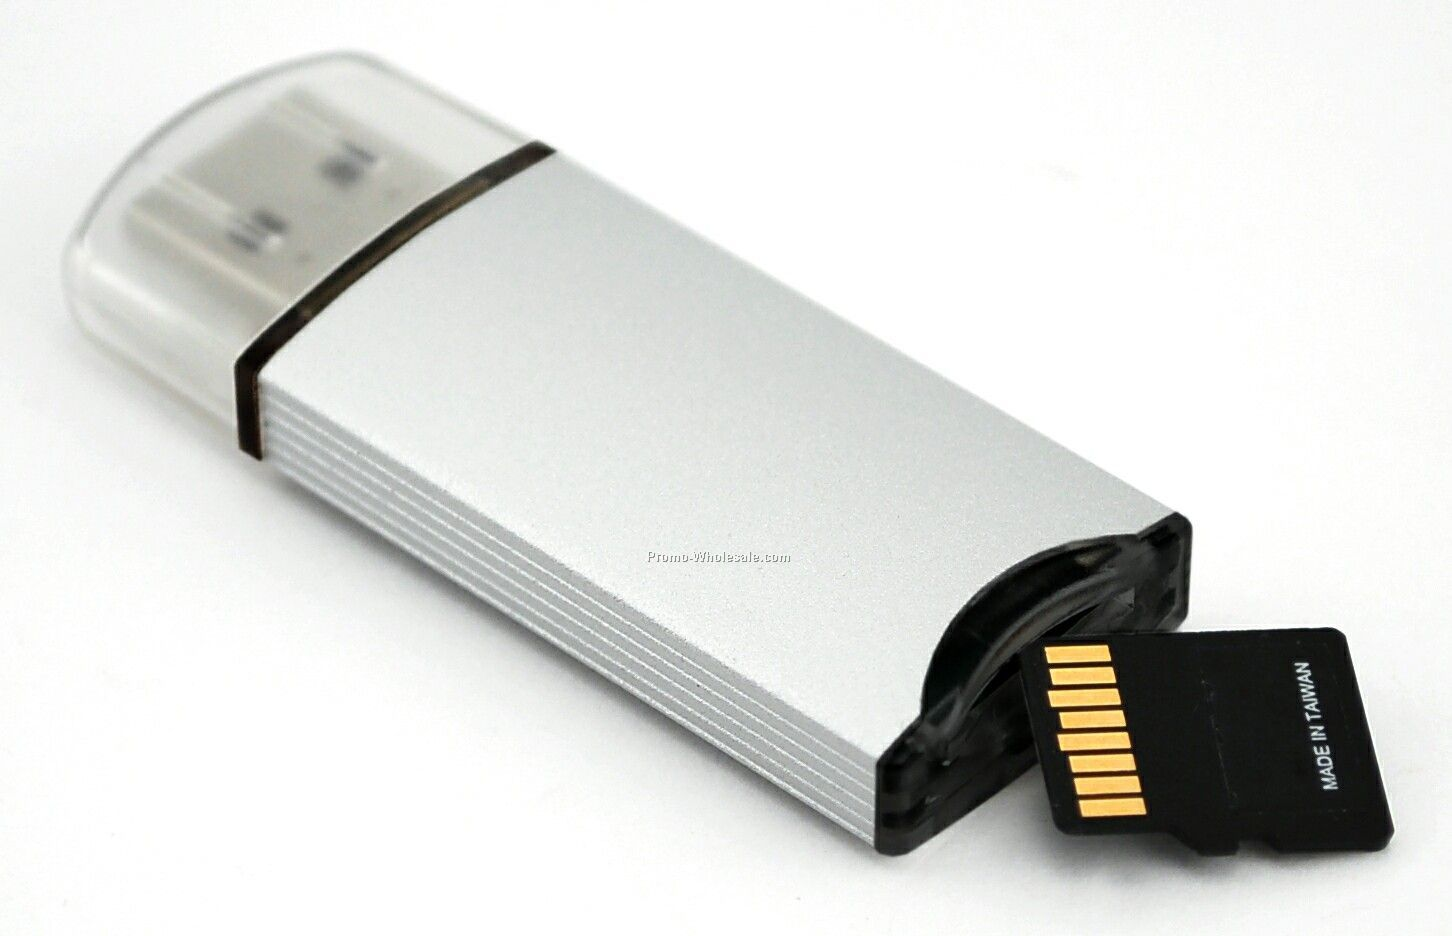 4gb Hybrid Micro Sd Reader And USB Drive